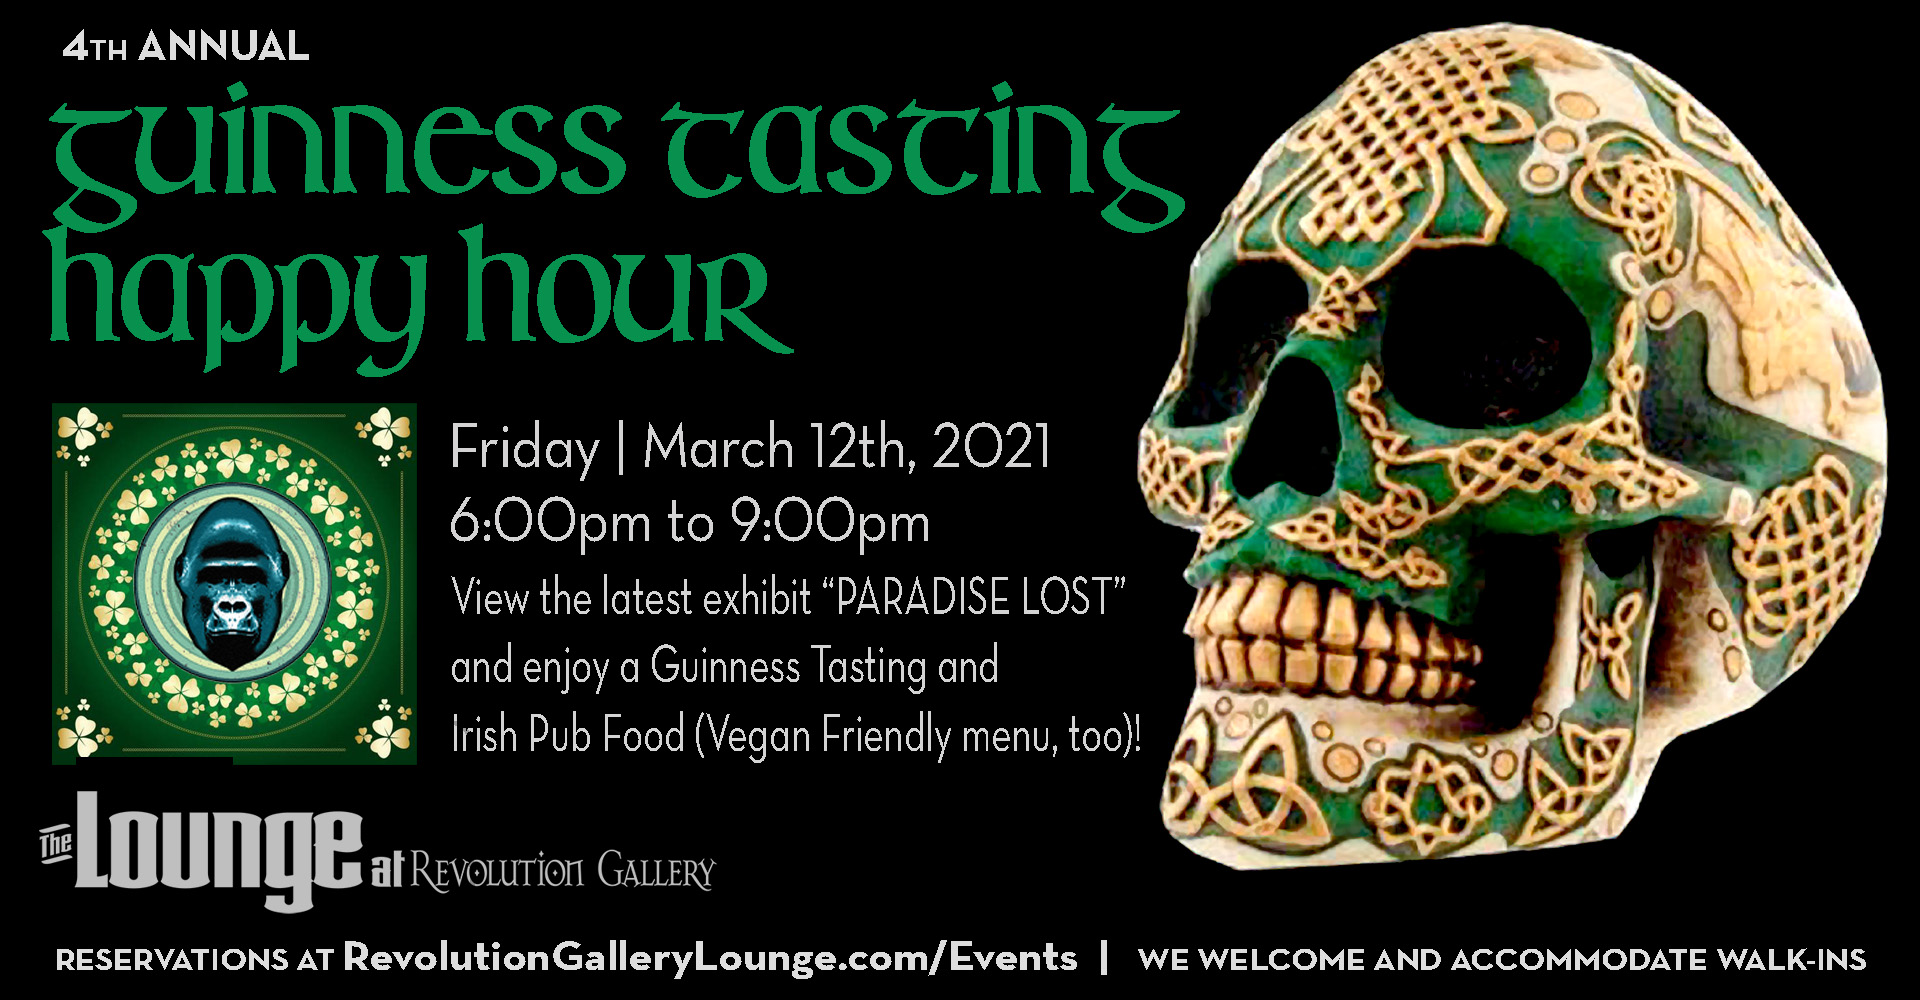 A green skull with St Patrick's symbols and pattern with info about a Guinness Tasting